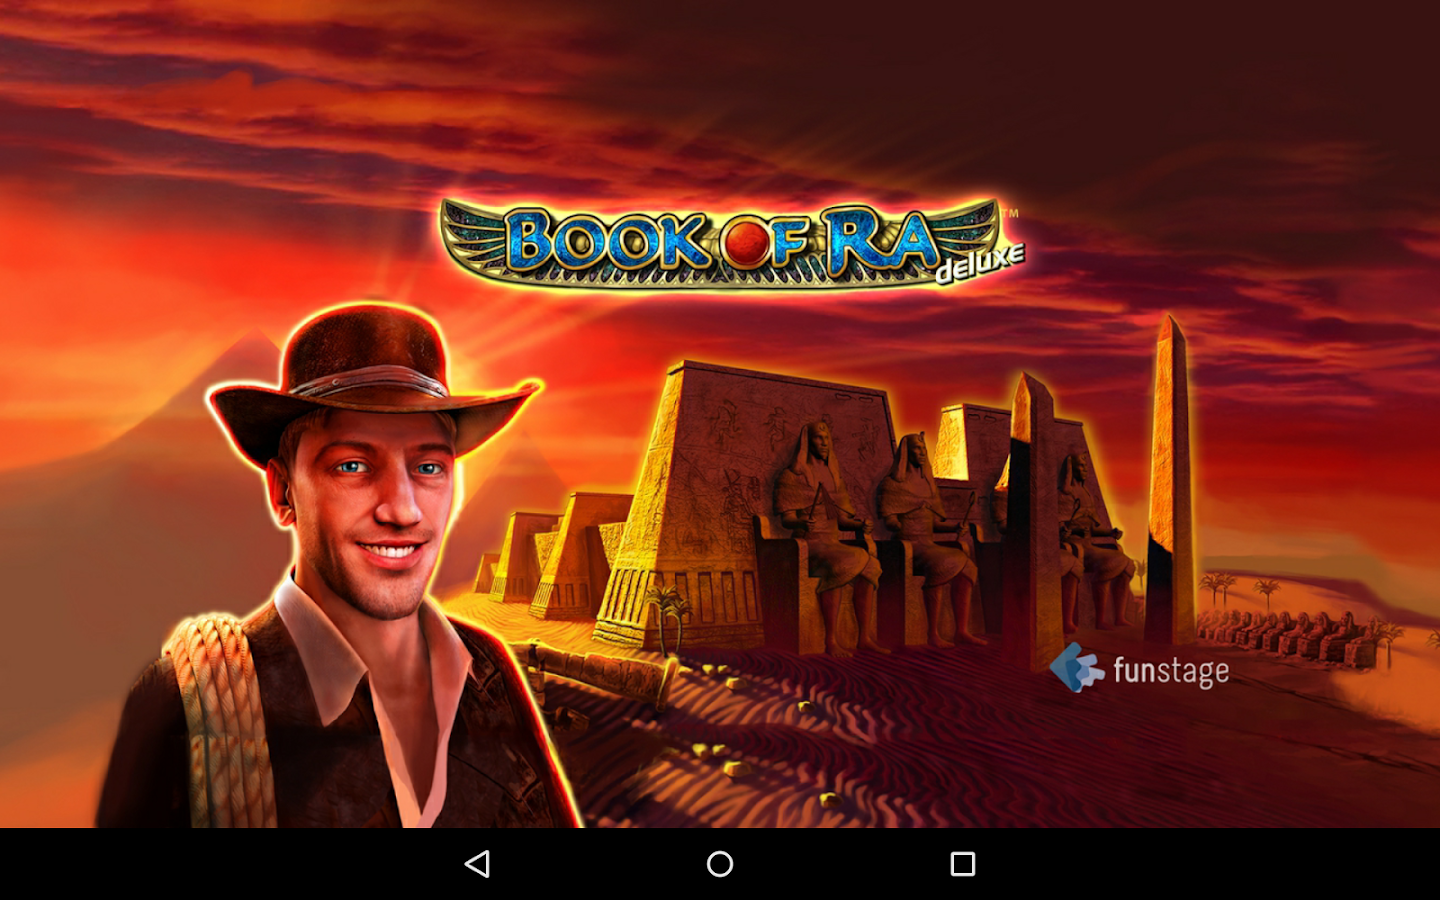 book of ra app kostenlos downloaden